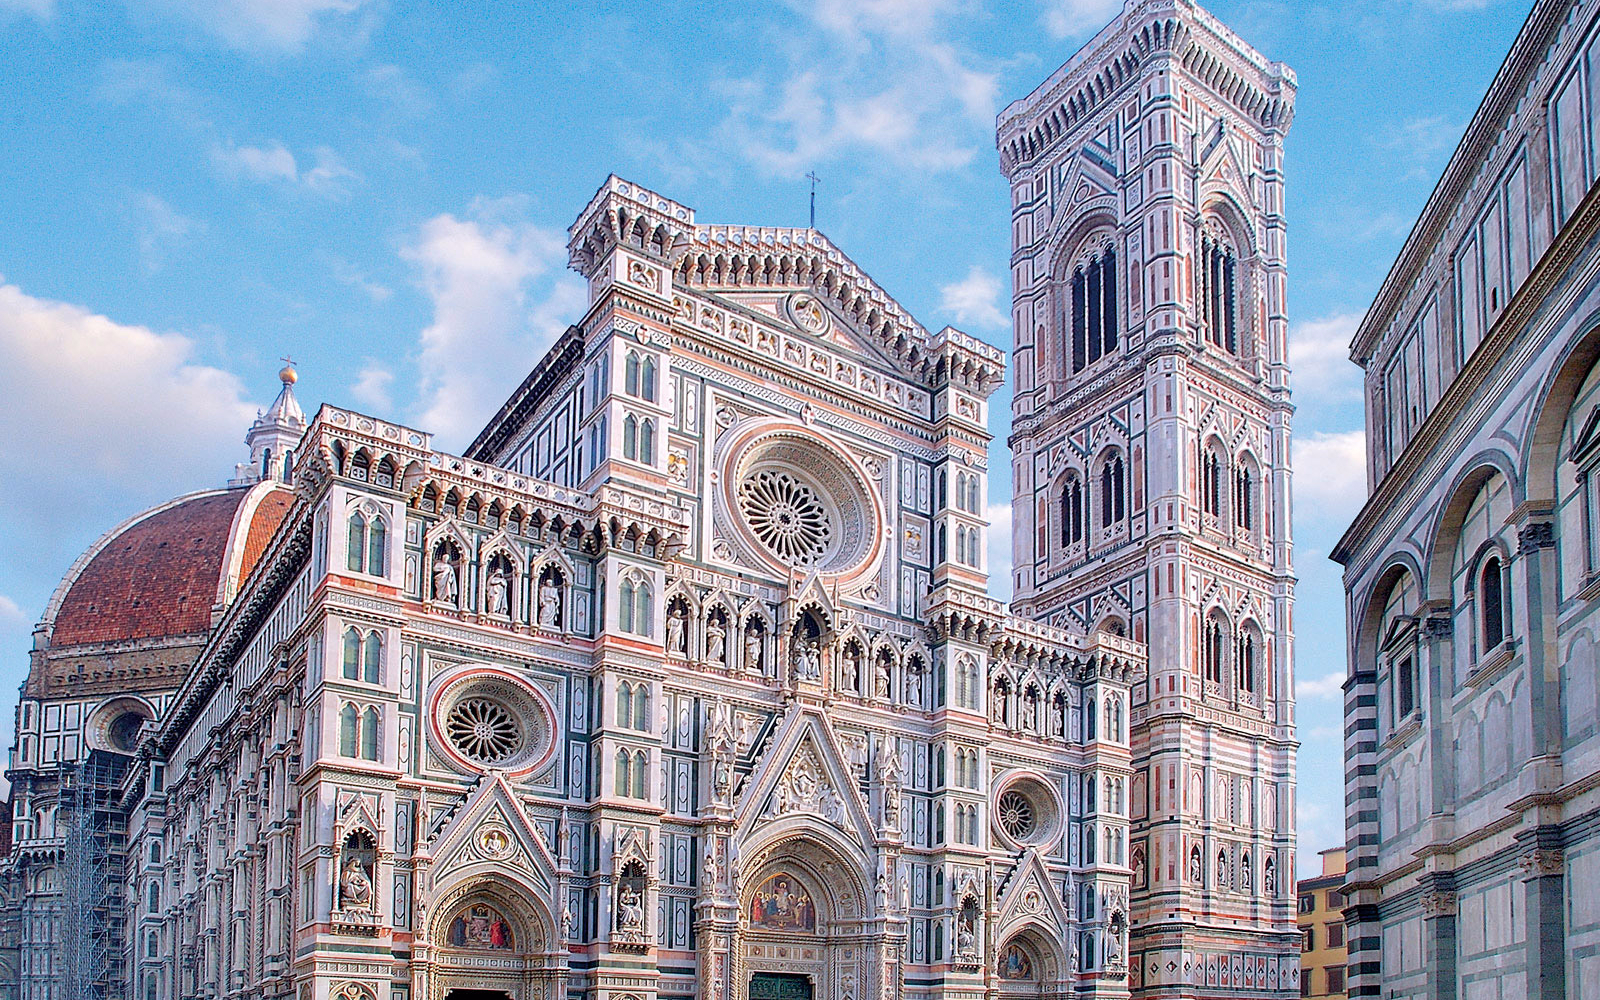 B00cd054 aa29 47f3 ab92 c5d718875d81 7619 florence exclusive guided florence duomo tour with priority access to accademia gallery 02